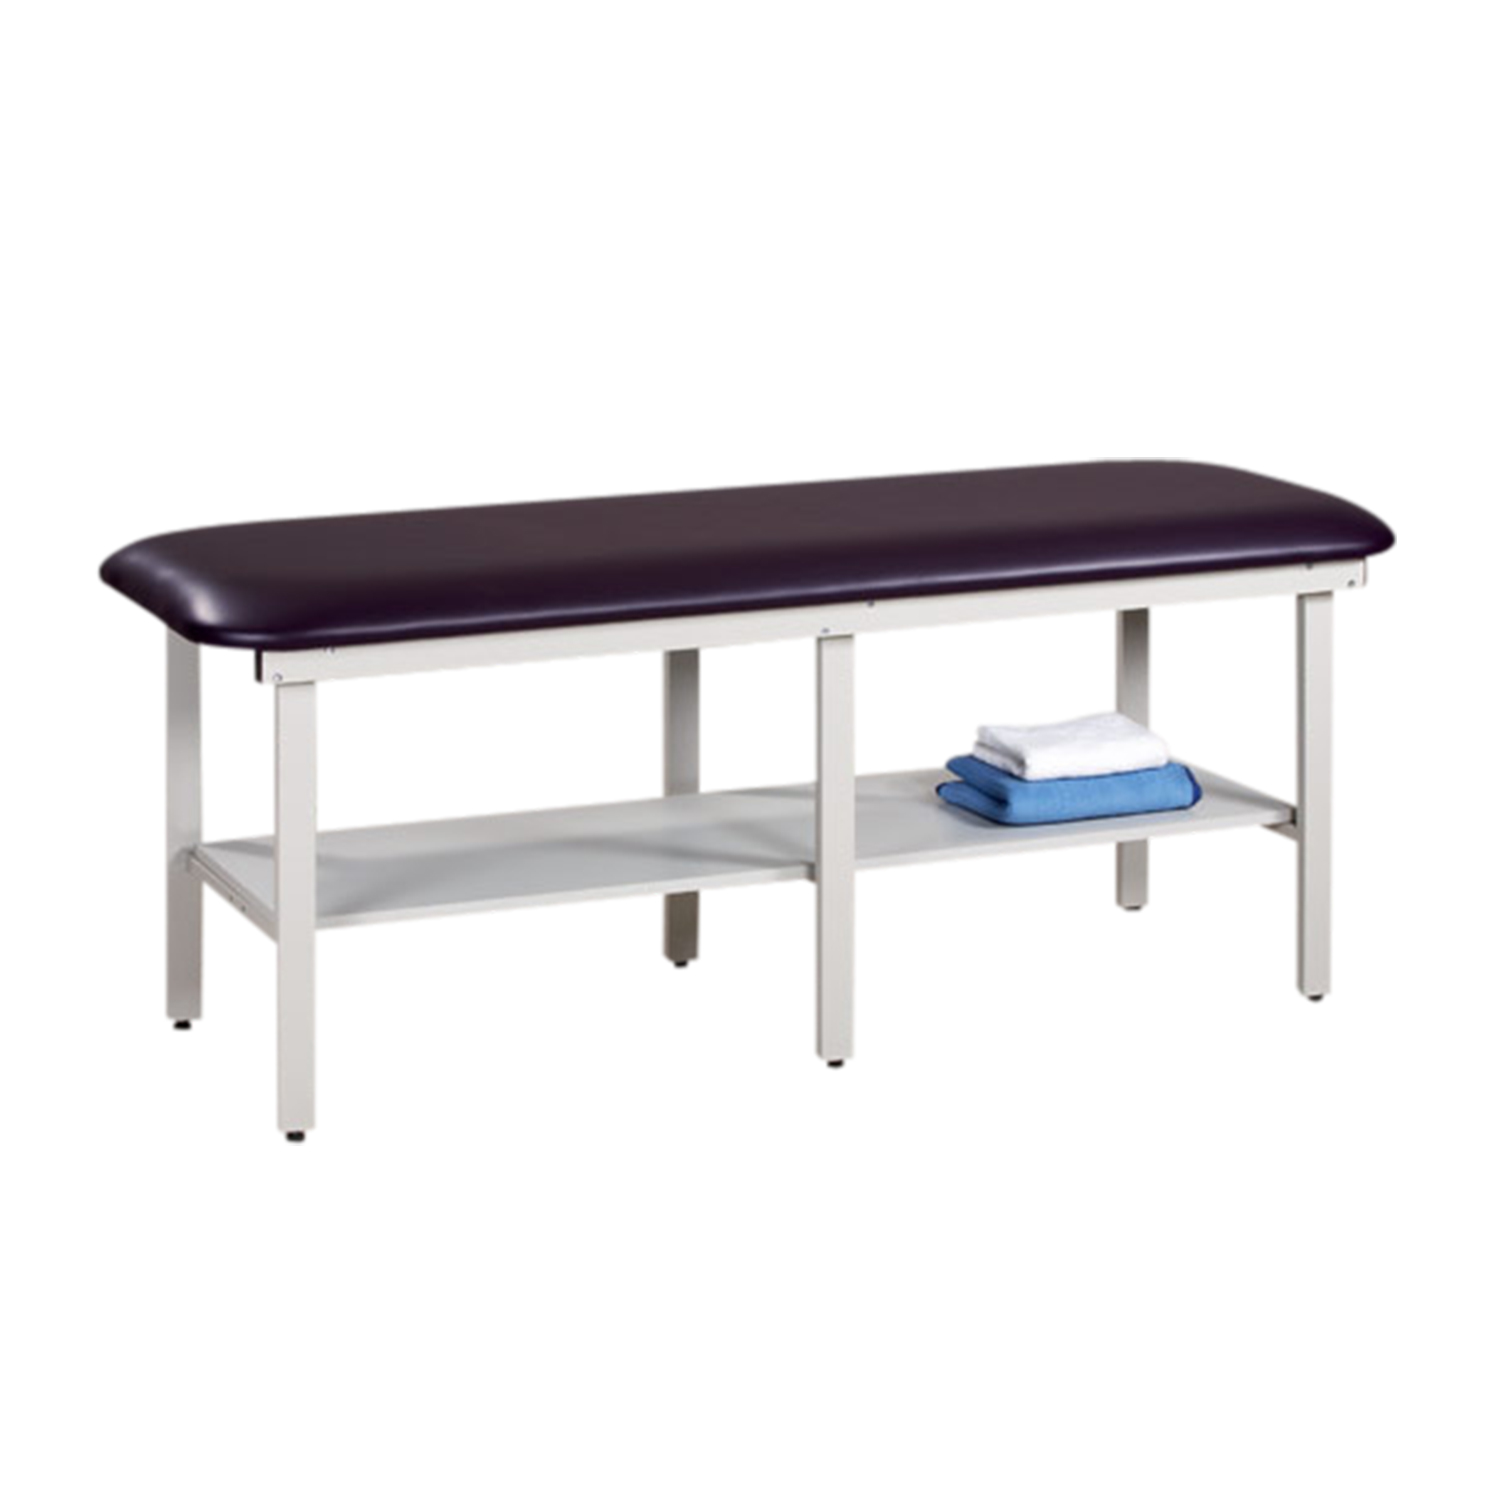 Clinton Bariatric Steel Frame Treatment Table - 6198